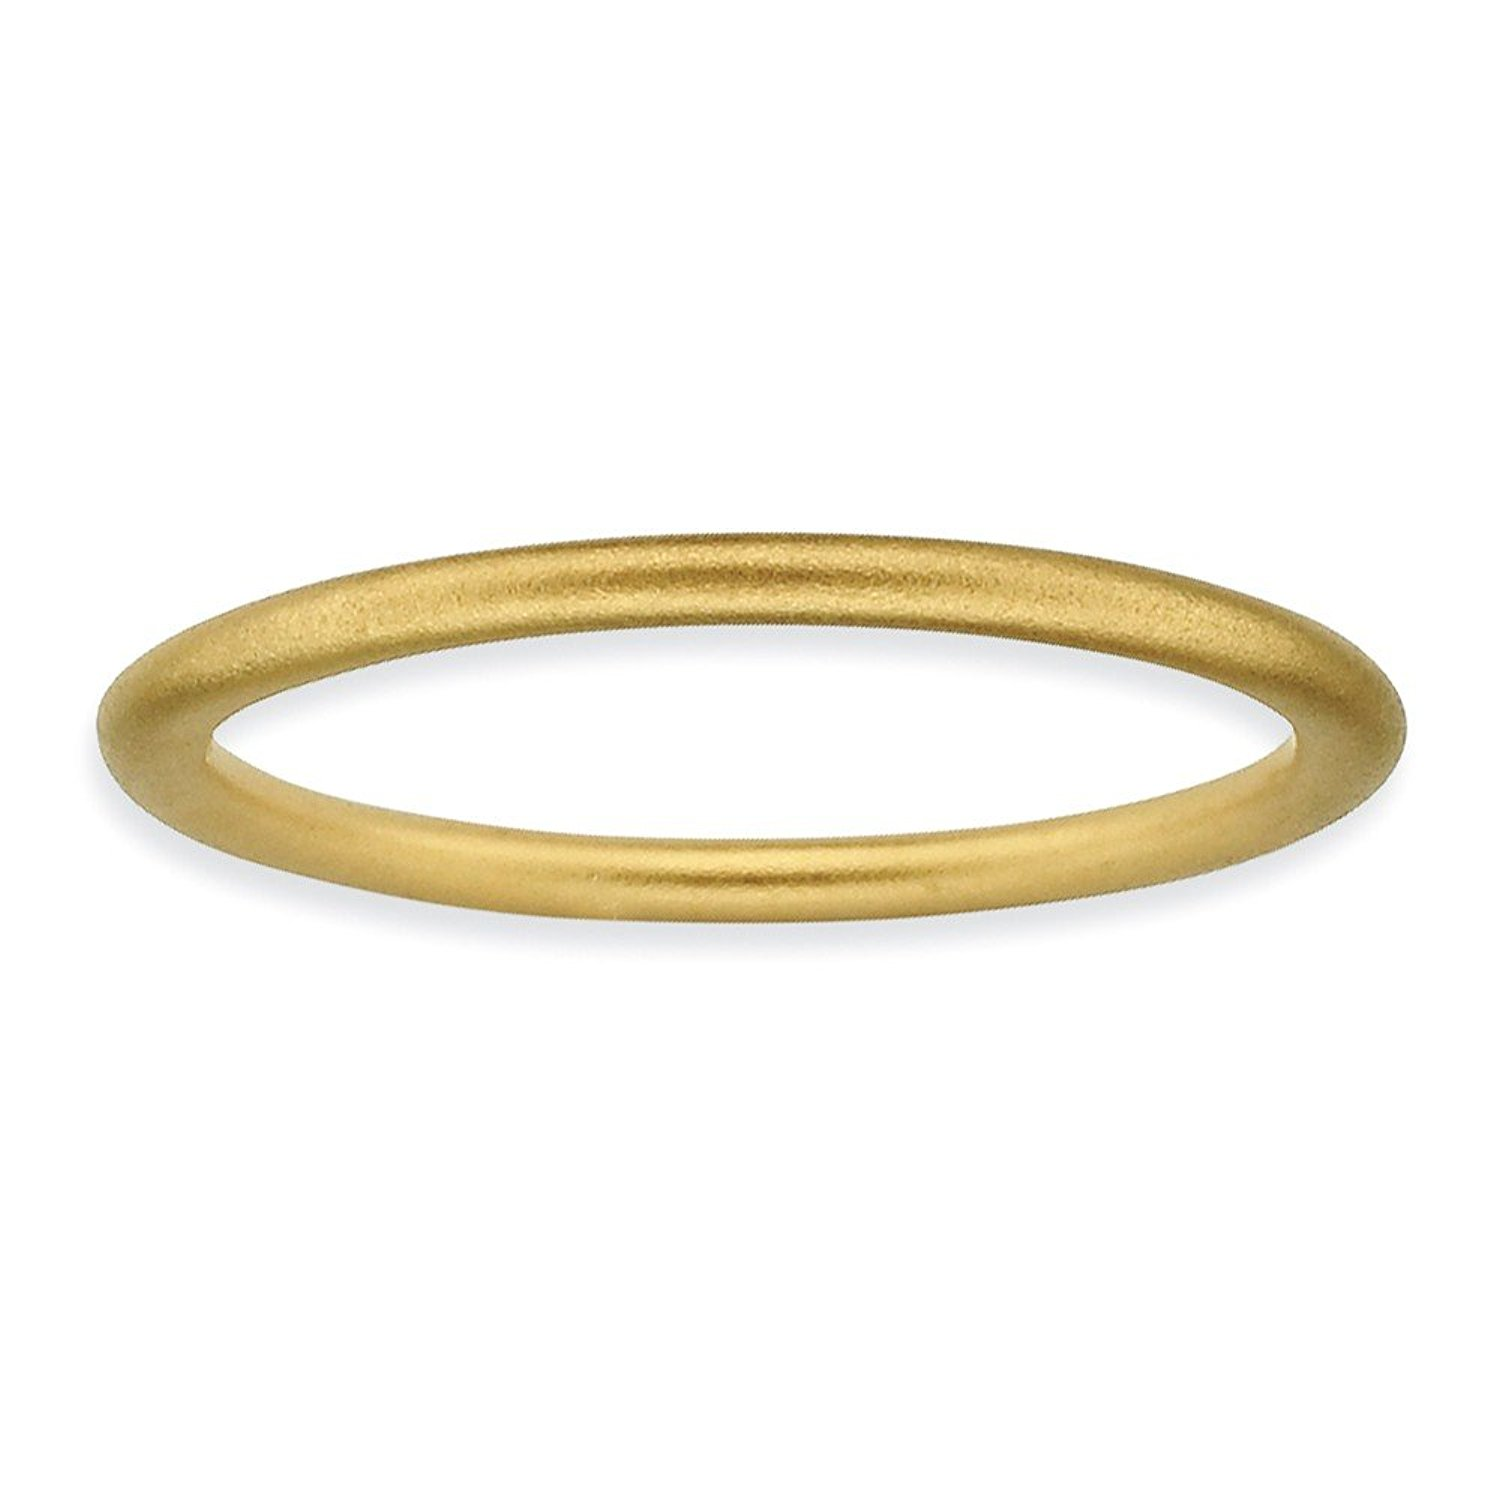 1.5mm Thin Satin Band 18K Yellow Gold Plated Sterling Silver Stackable Expressions Ring